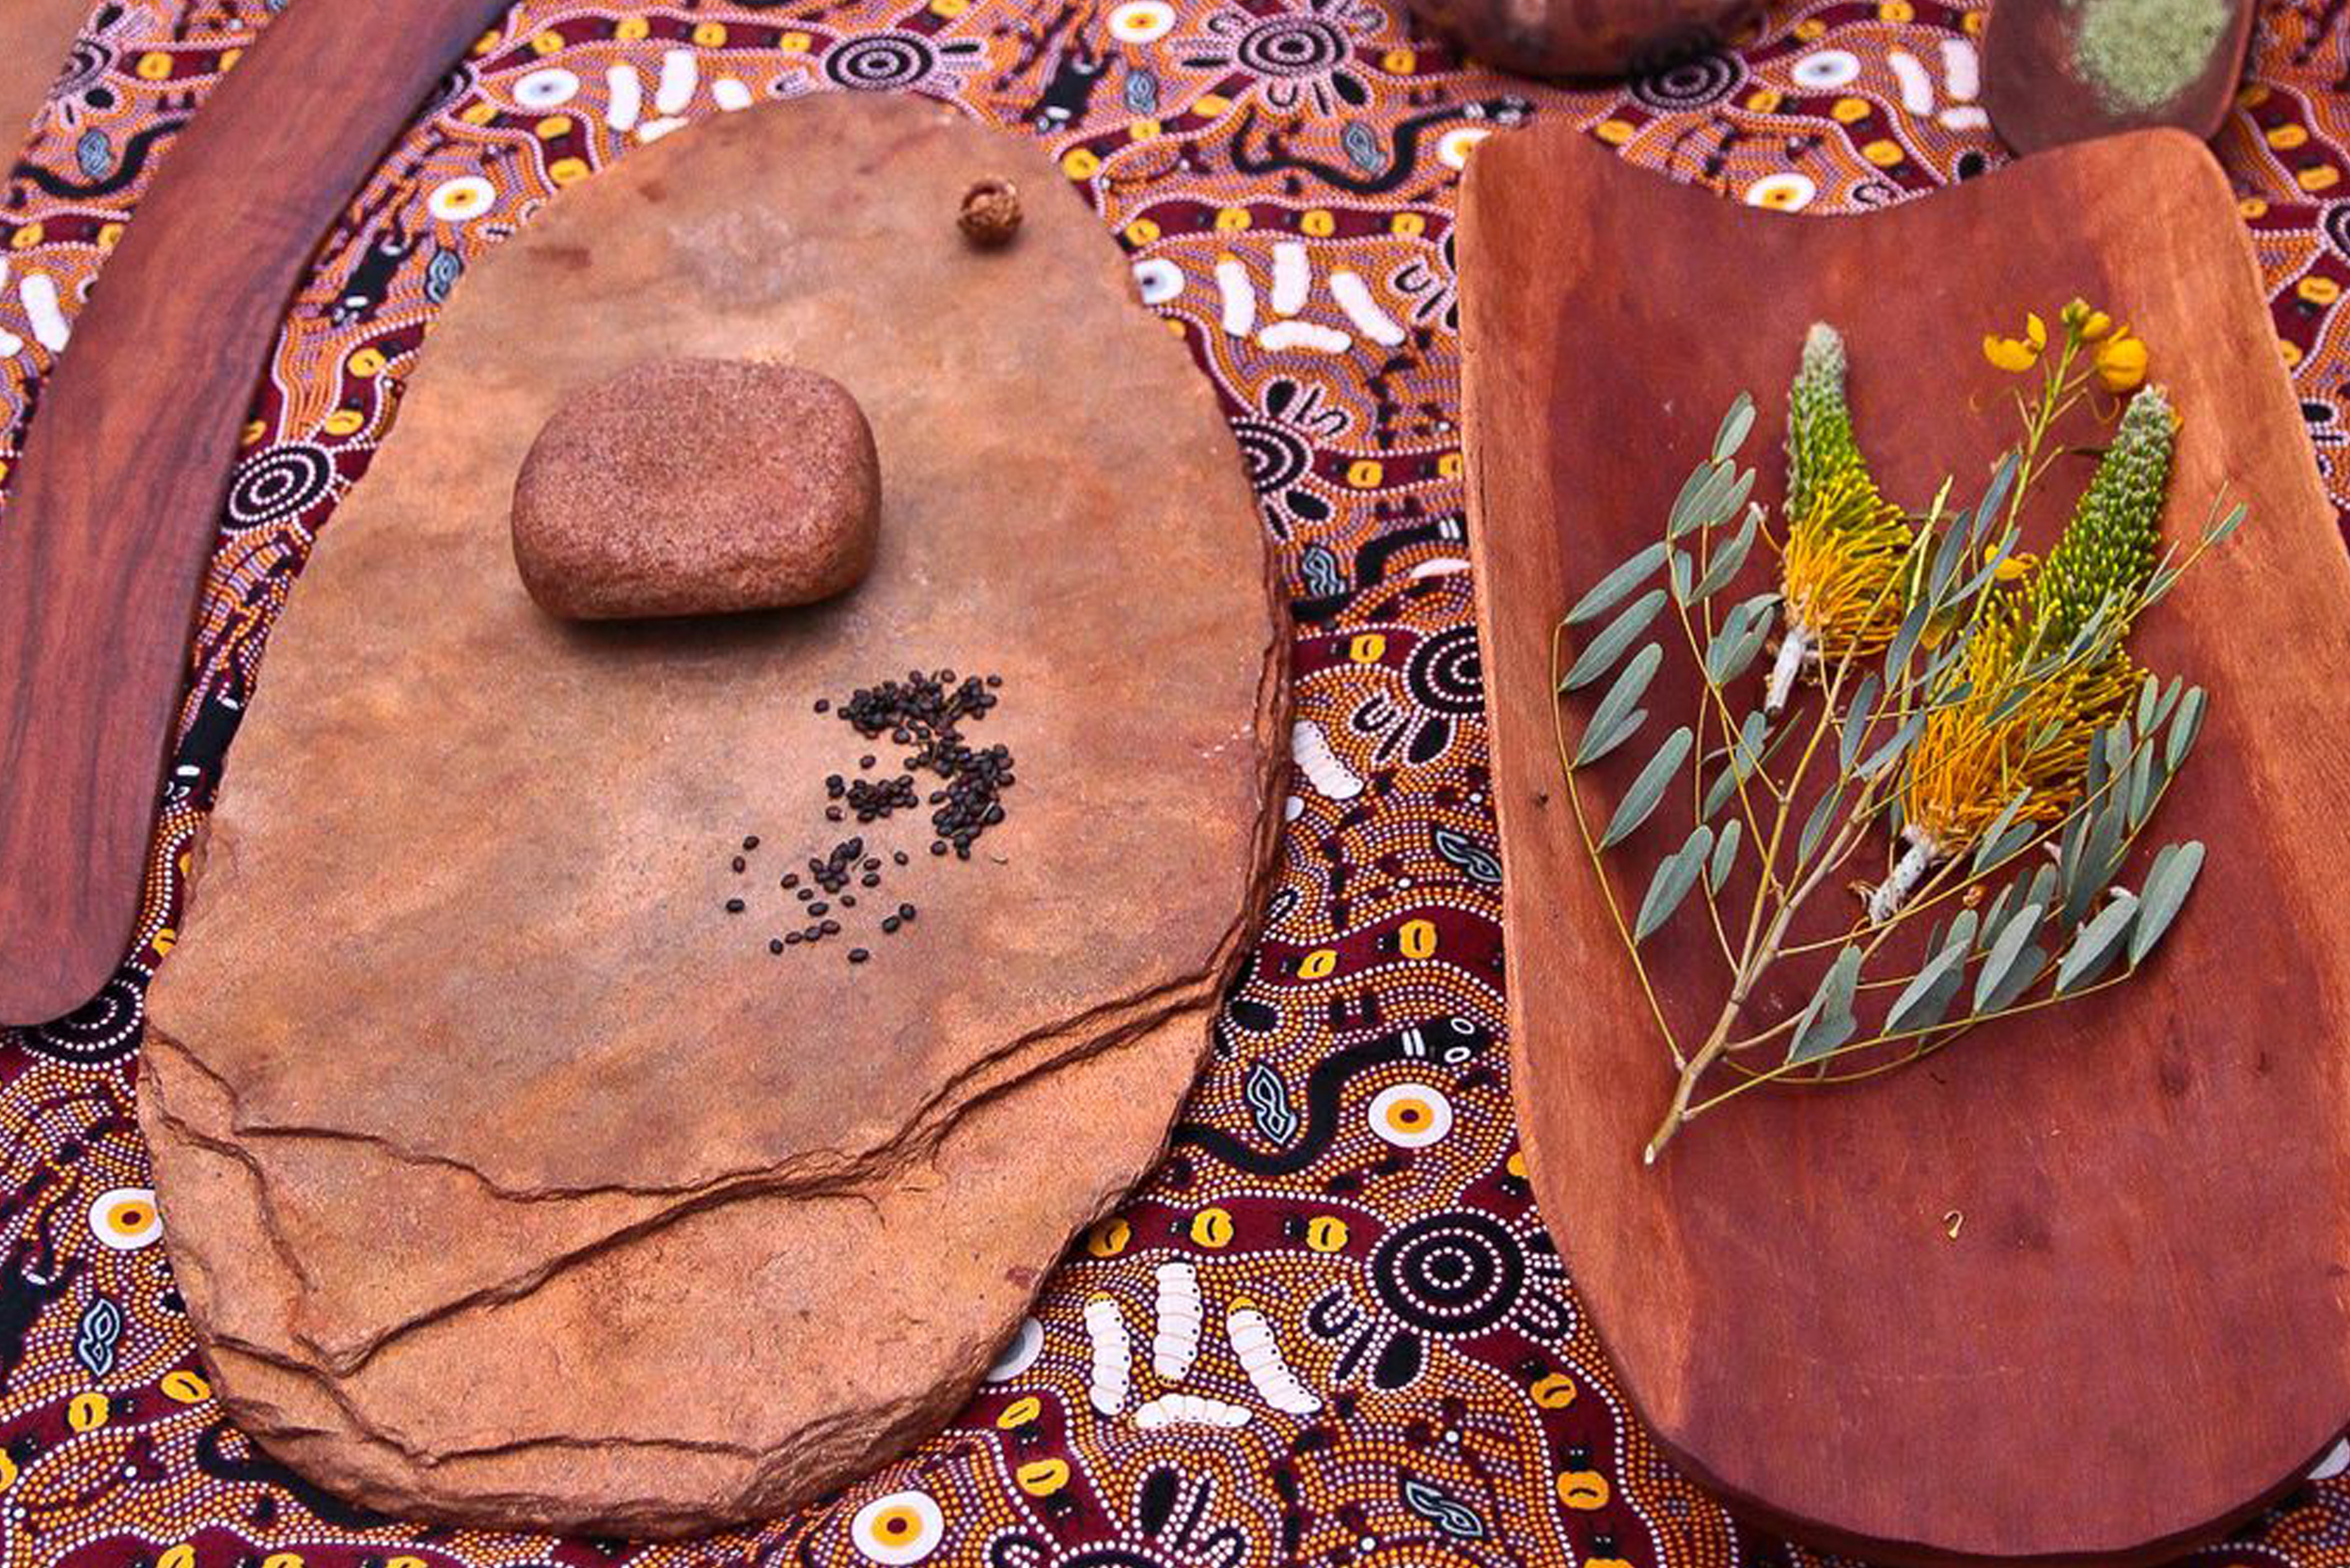 Bush Tucker near Uluru. Wattle seeds, Acacia (wattle) wood Coolamon and Chocolate wattle flower. Image courtesy of Lorraine Elliott at Not Quite Nigella.